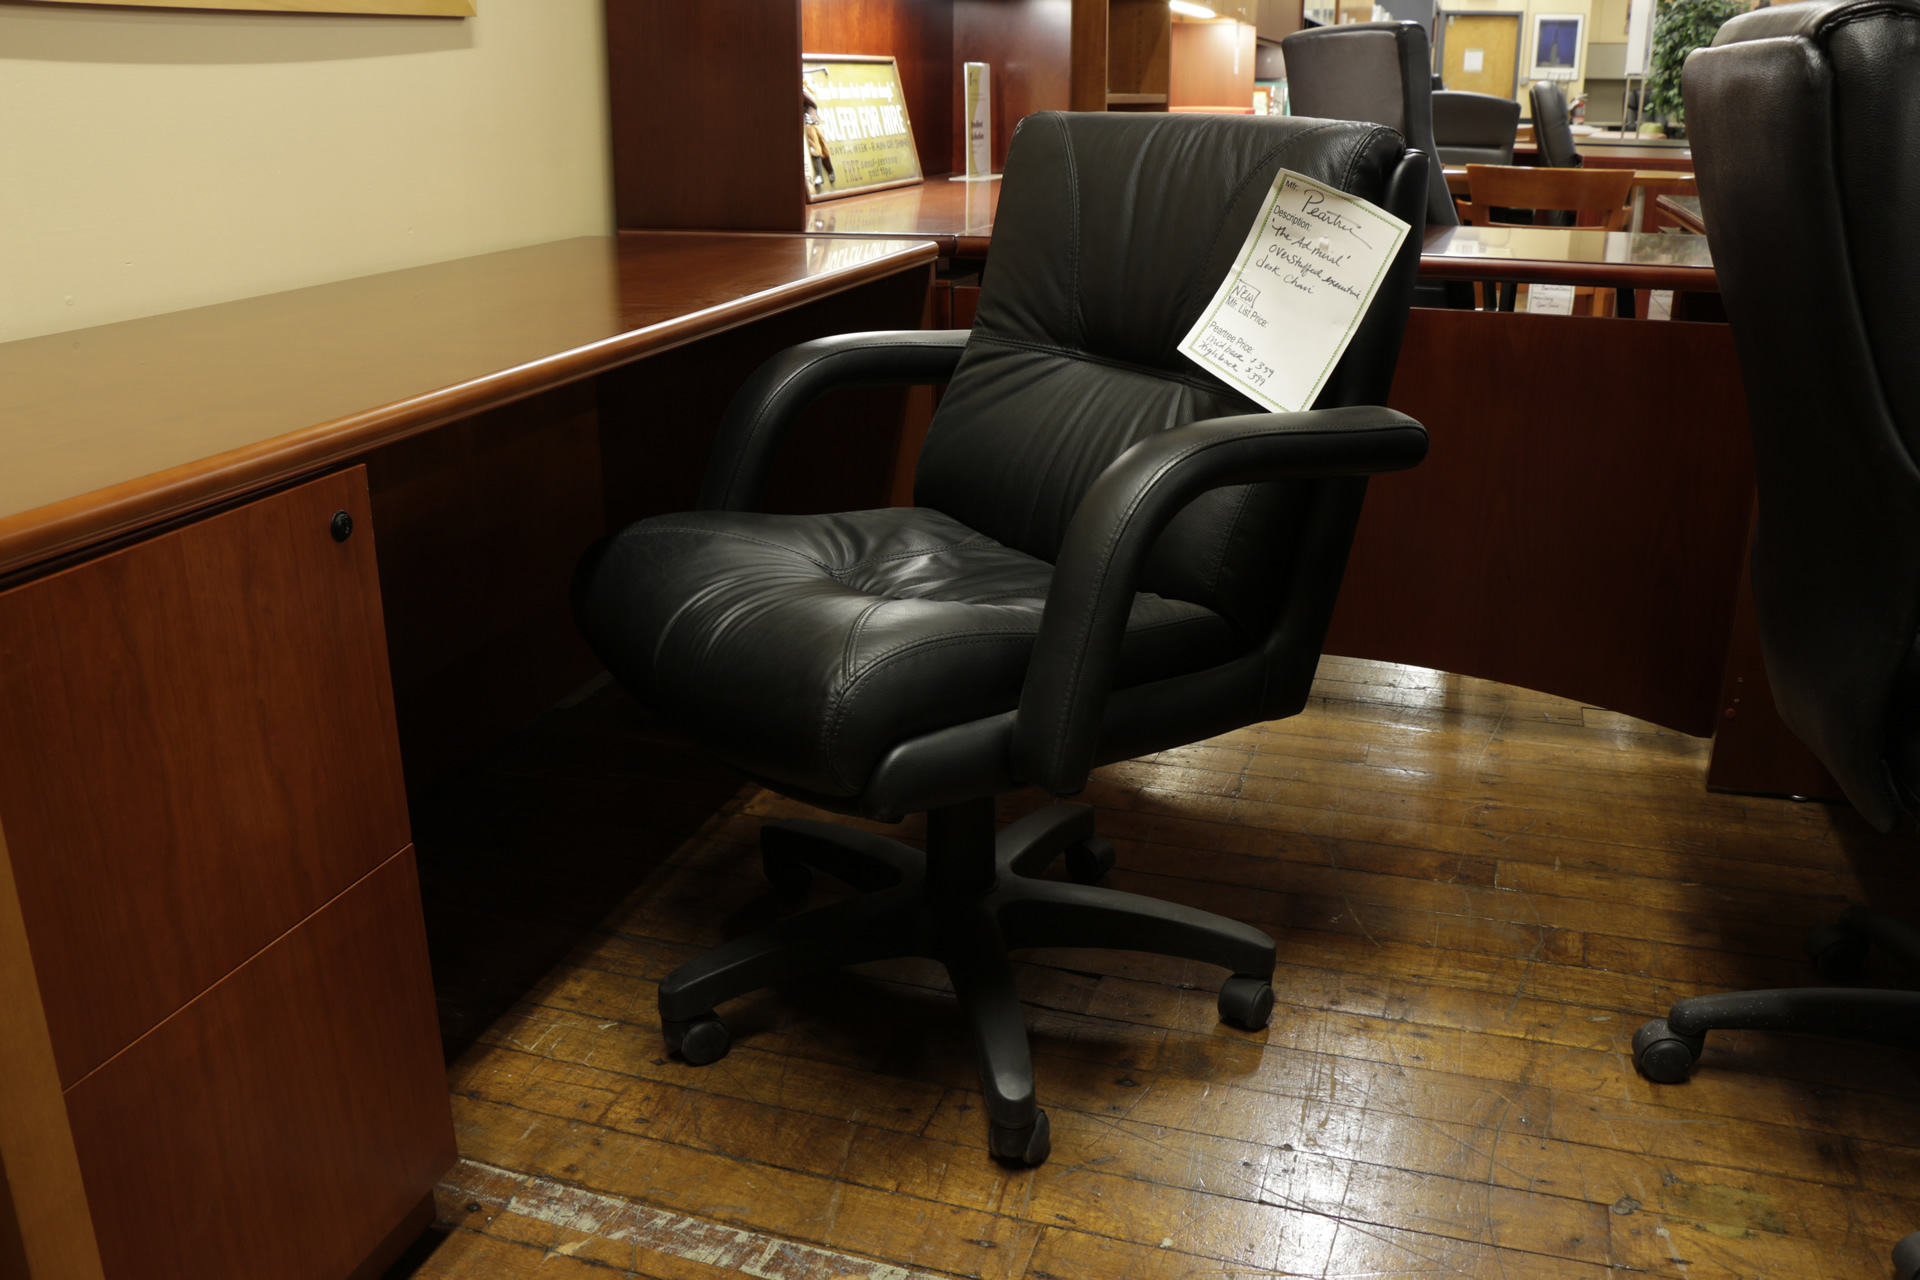 peartreeofficefurniture_peartreeofficefurniture_mg_2975.jpg